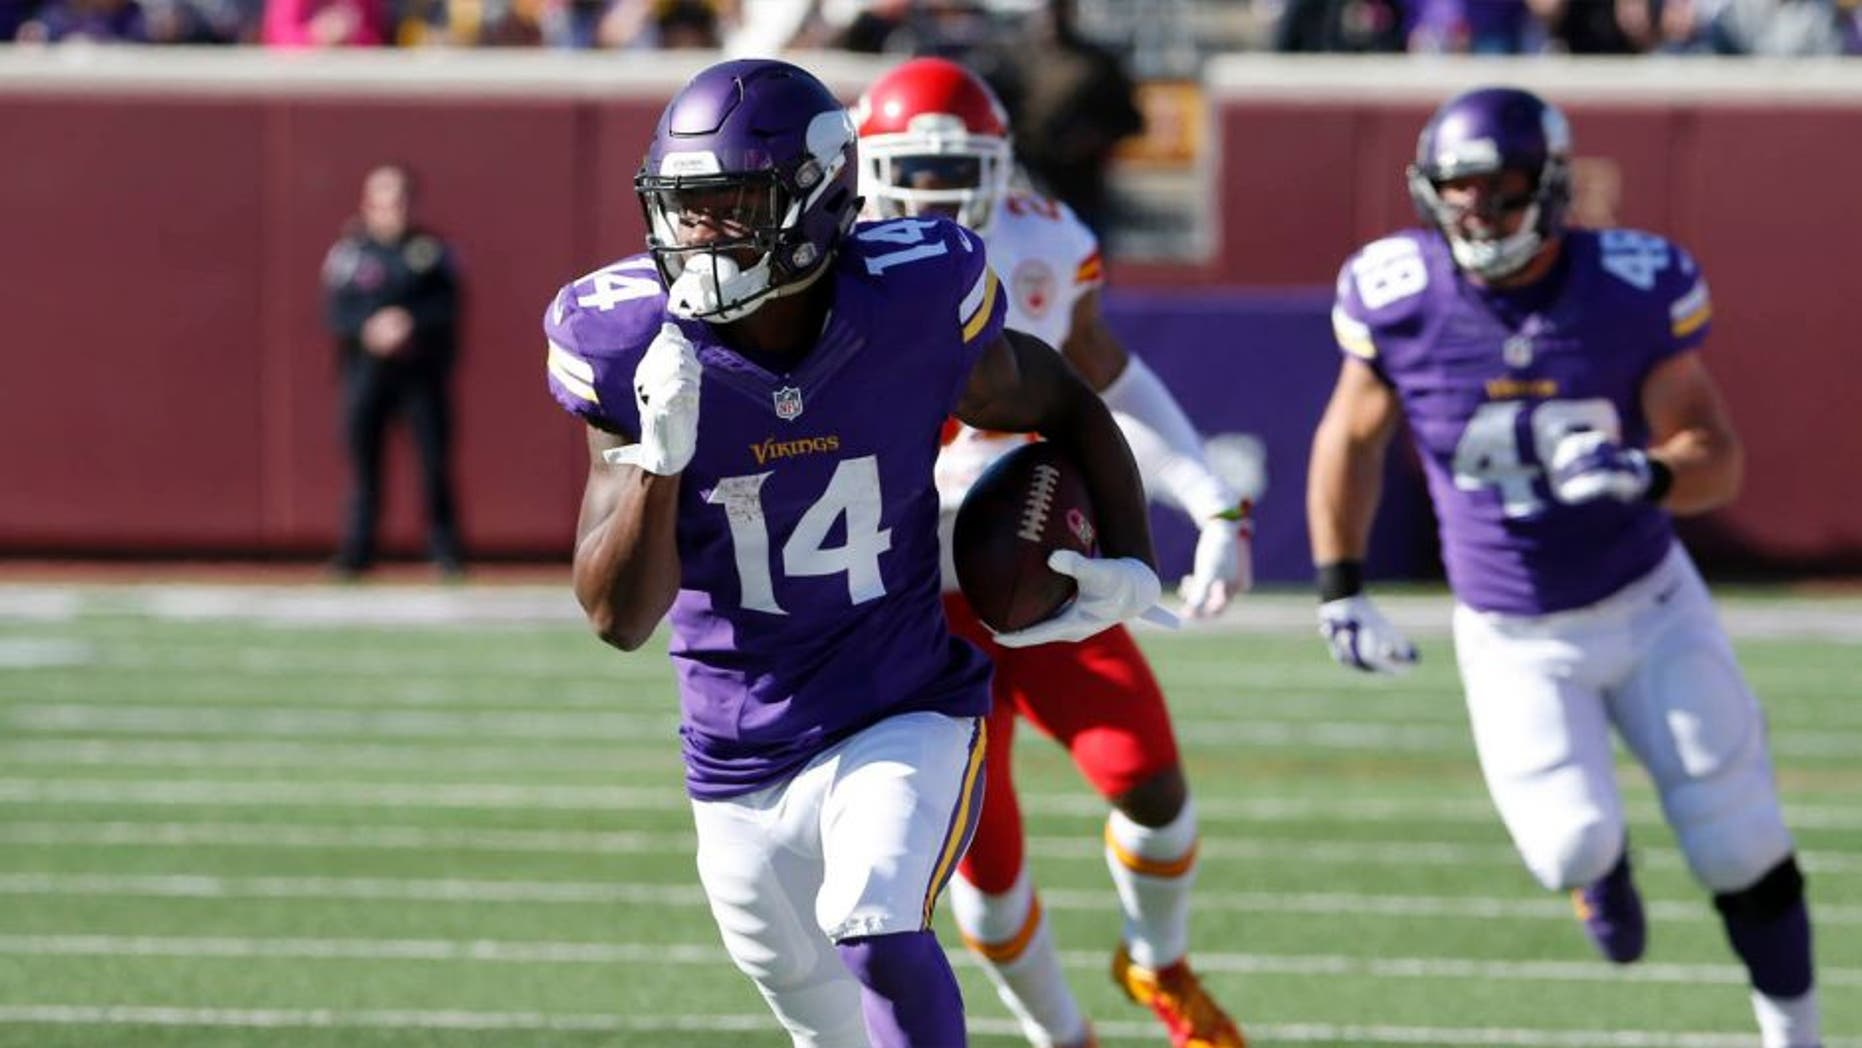 Minnesota Vikings wide receiver Stefon Diggs runs with the ball during the first half against the Kansas City Chiefs on Sunday, Oct. 18, 2015, in Minneapolis. Few knew who Stefon Diggs was when the Vikings grabbed the receiver in the fifth round of the draft. After Sunday's seven-catch, 129-yard performance, coaches, opposing defenses and fantasy owners are going to start taking notice.